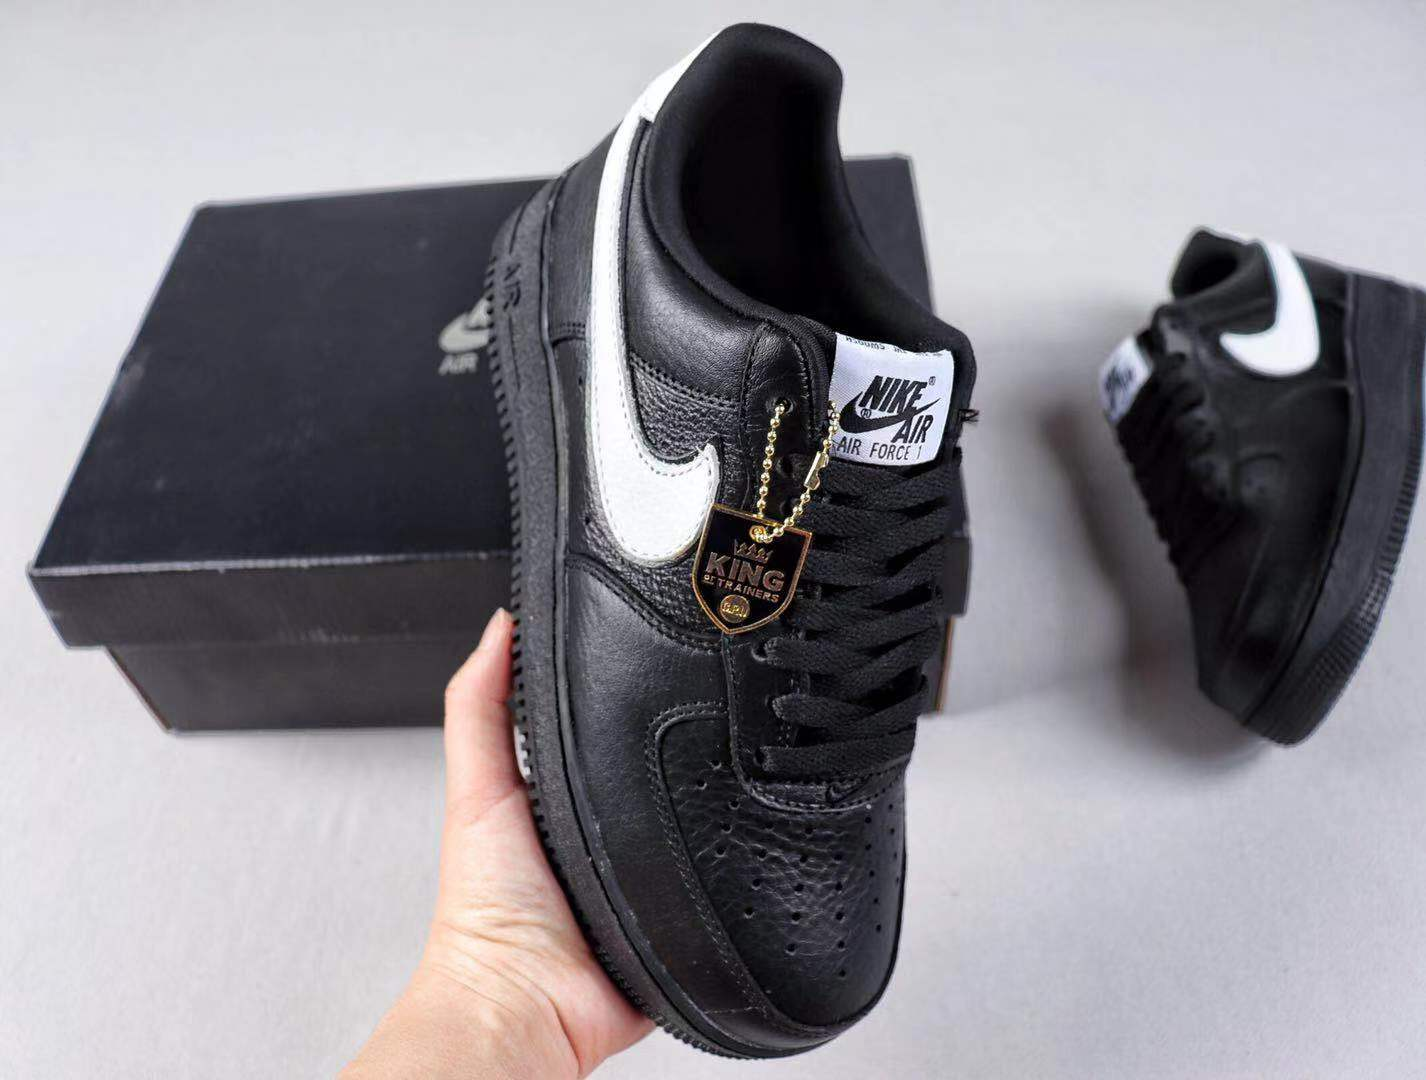 Nike Air Force 1 Low QS Black/White Best Sell Shoes CQ0492-001